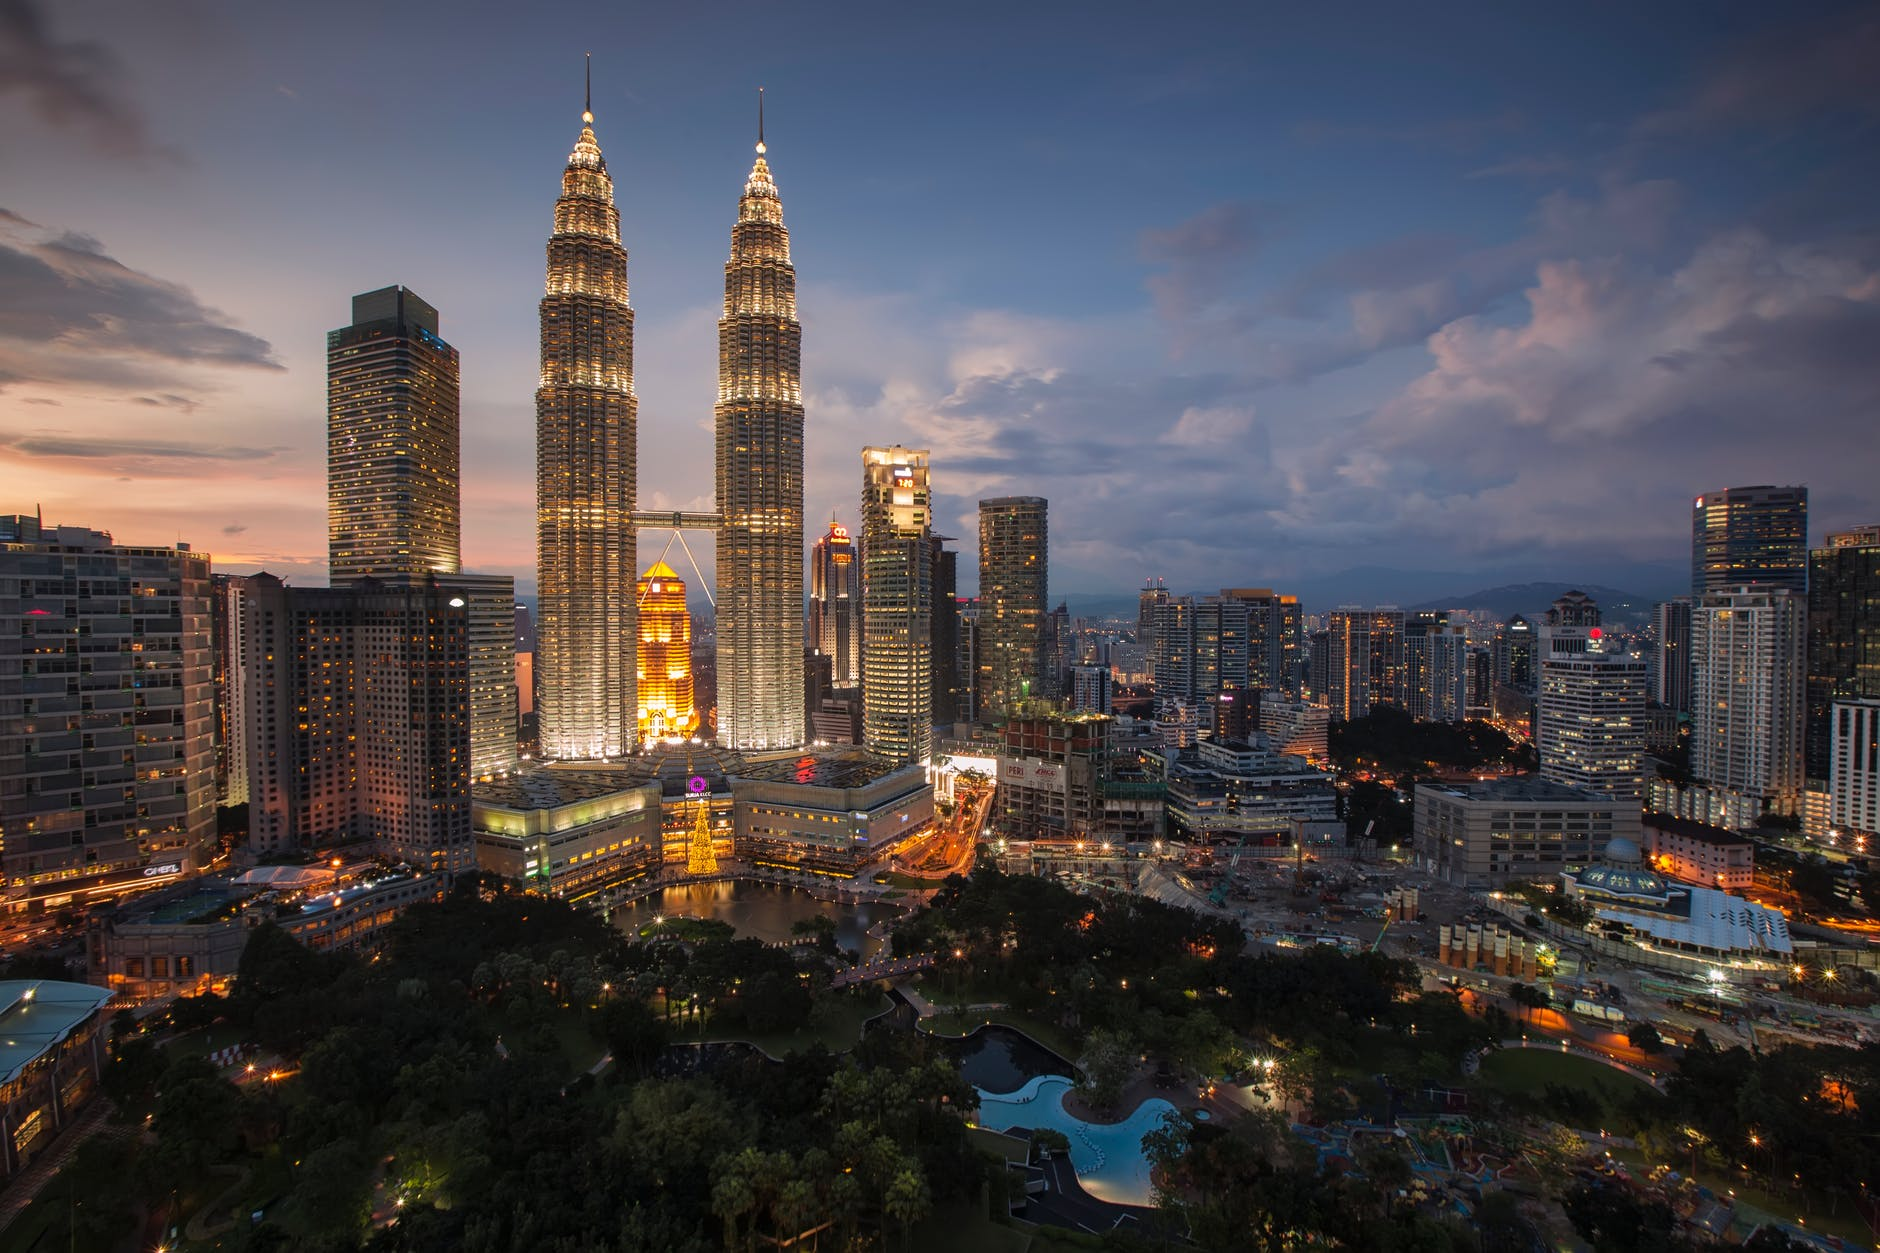 Malaysia is on its way to implement 5G in the telcos market. Source: Pexels